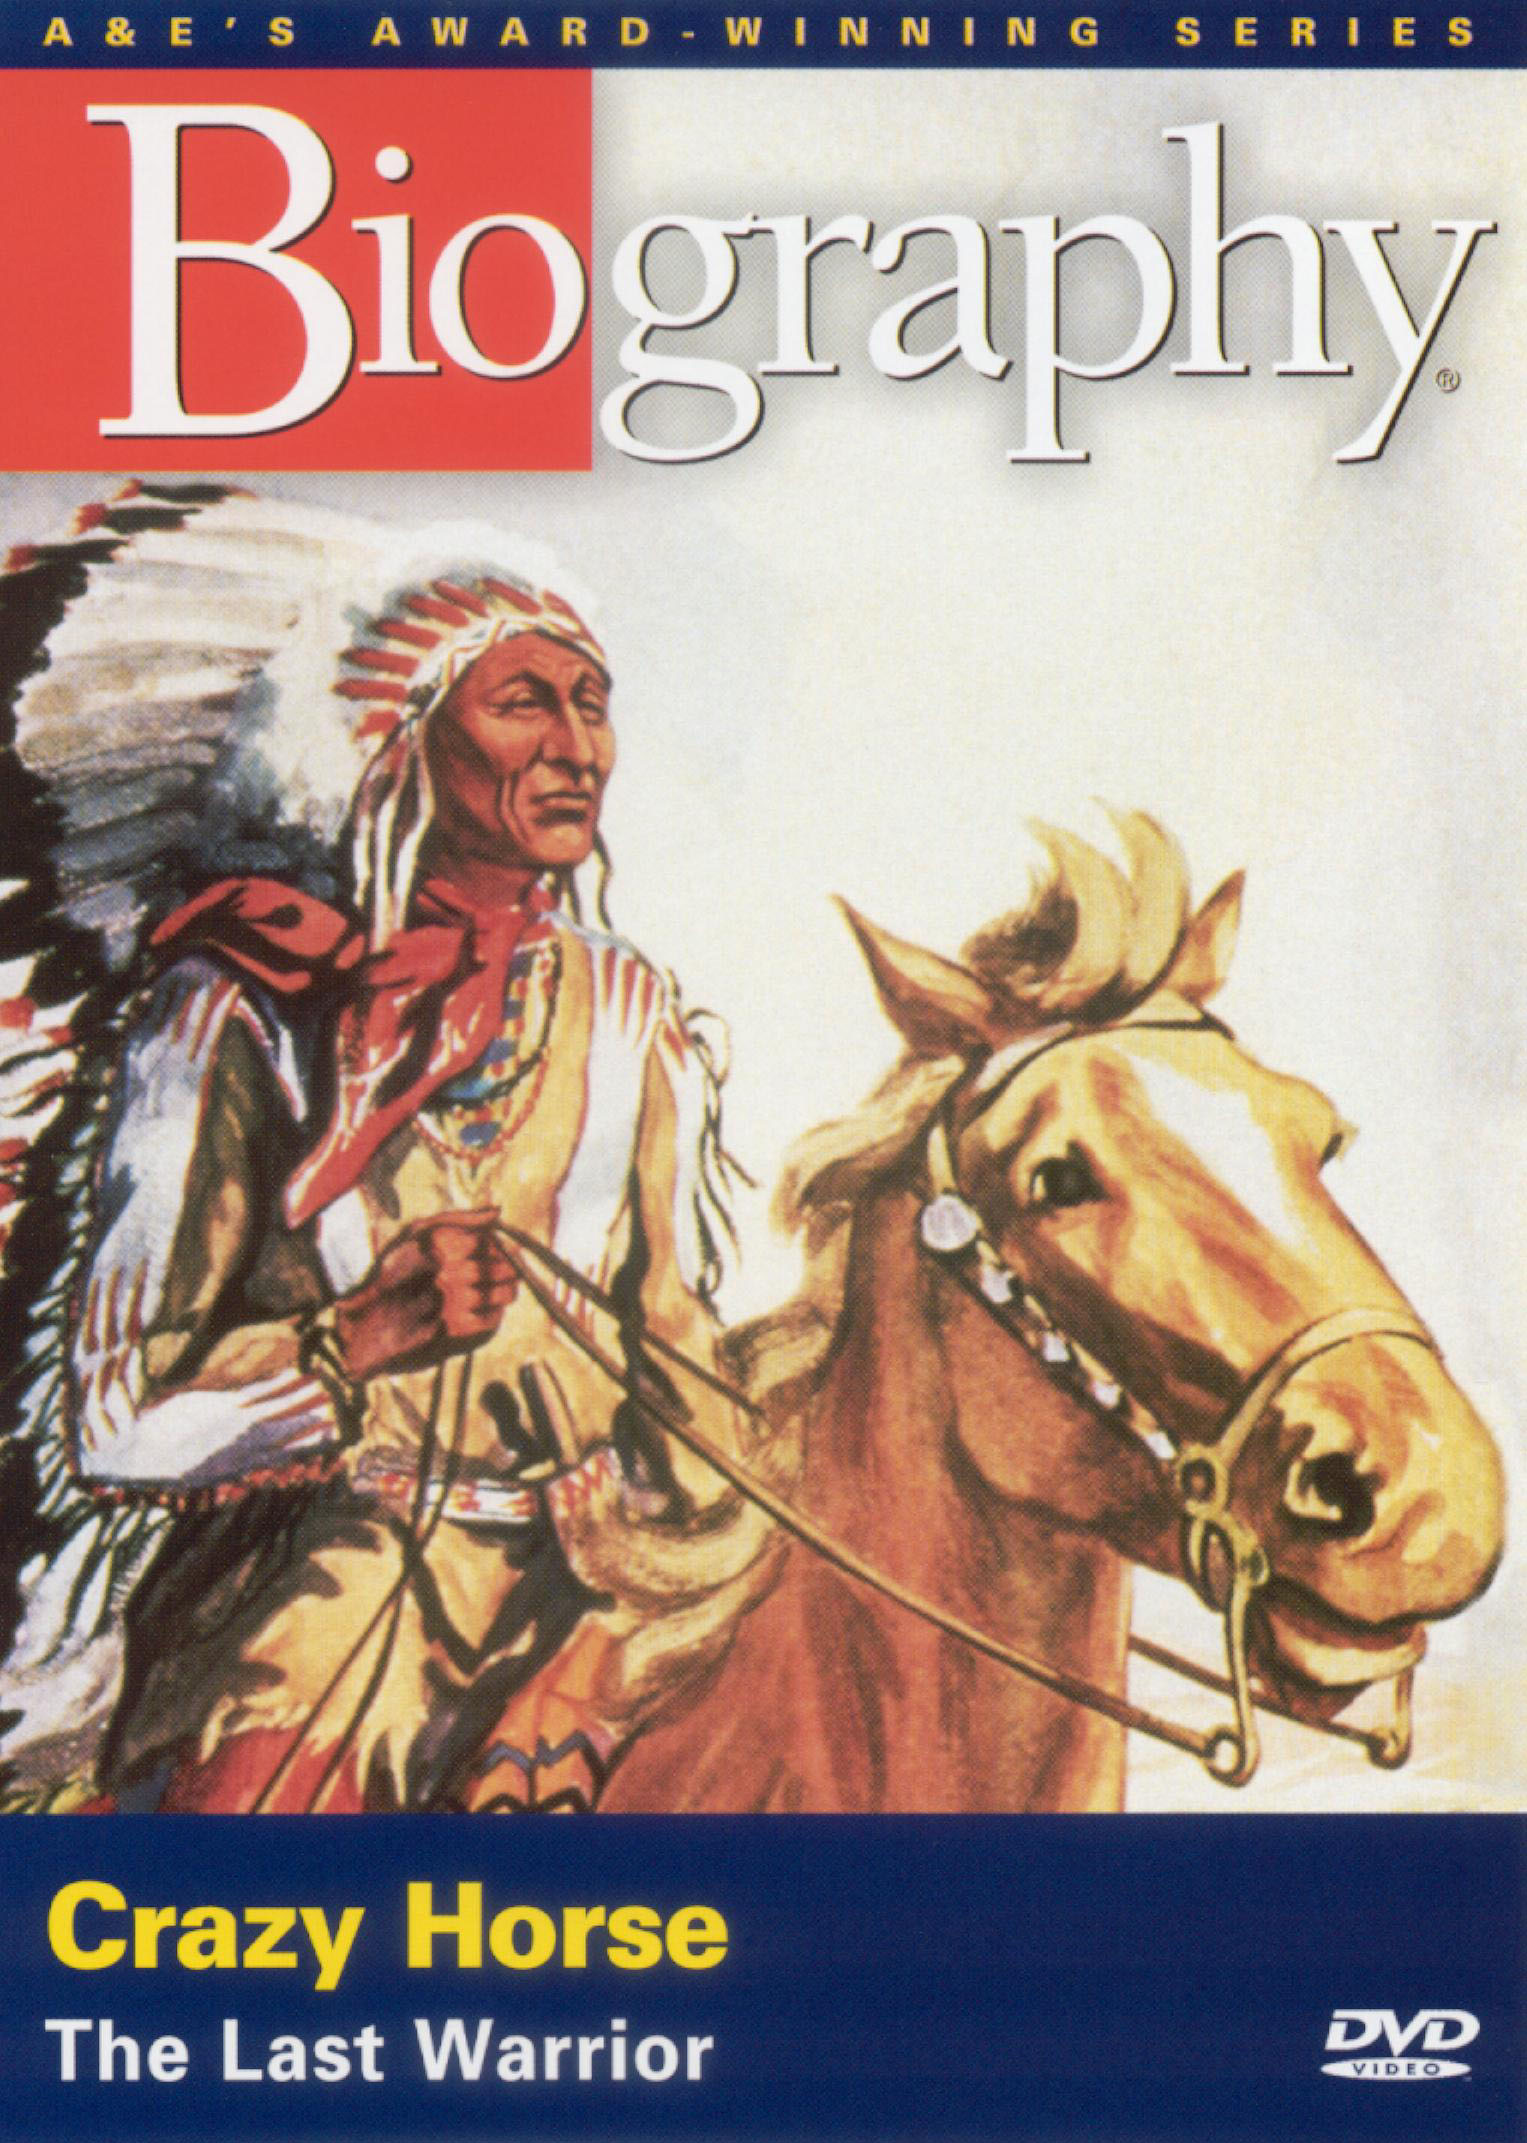 a biography of crazy horse A biography which looks back across more than 120 years at the life and death of the great sioux warrior crazy horse, who became a reluctant leader at the battle of little big horn and.